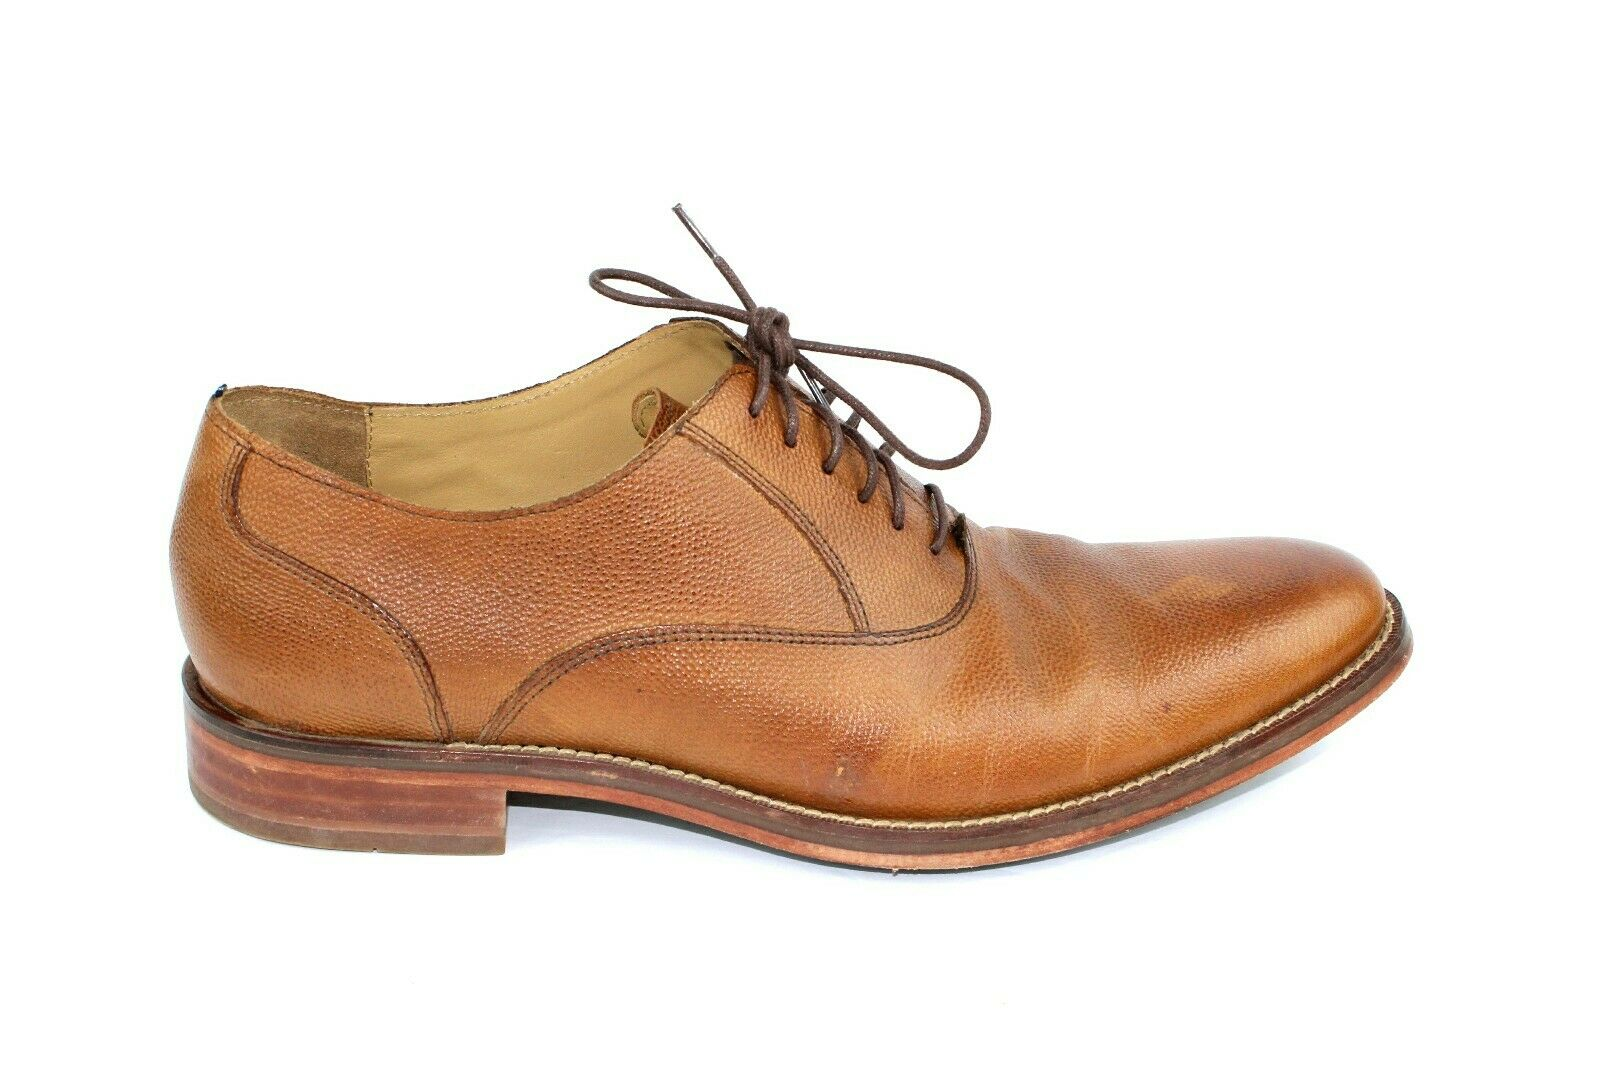 Cole Haan Grand OS Madison Plain Toe Marronee Leather Oxfords C13535 Mens US 10.5 M